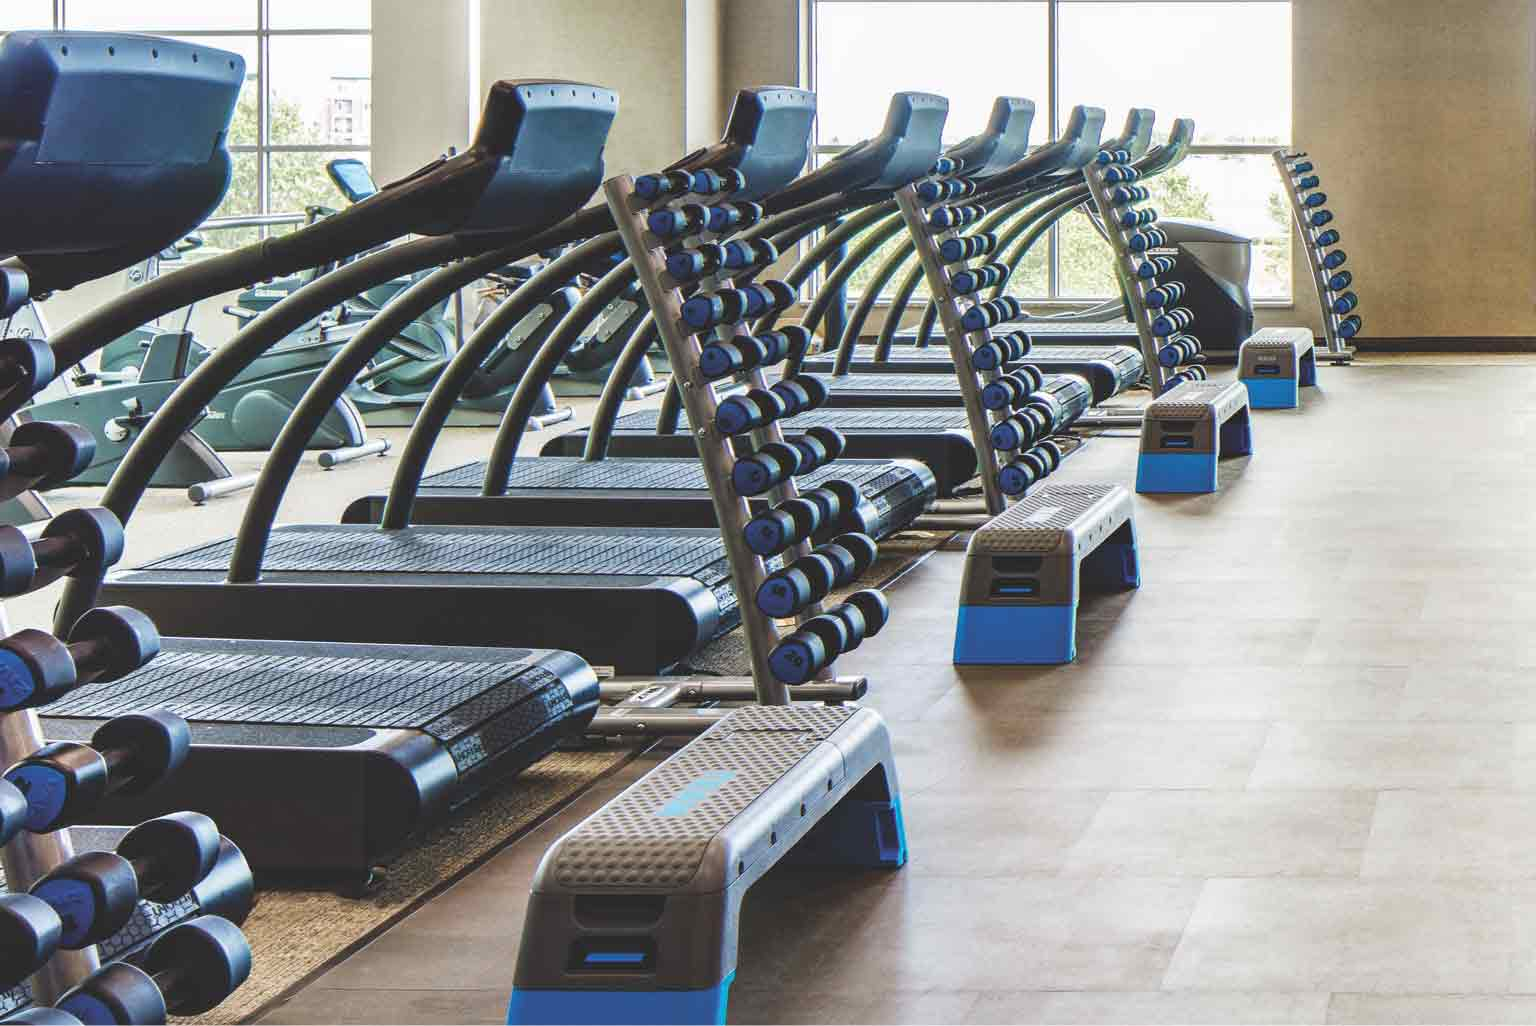 A photo of an indoor studio lined with two rows of treadmills and weight racks